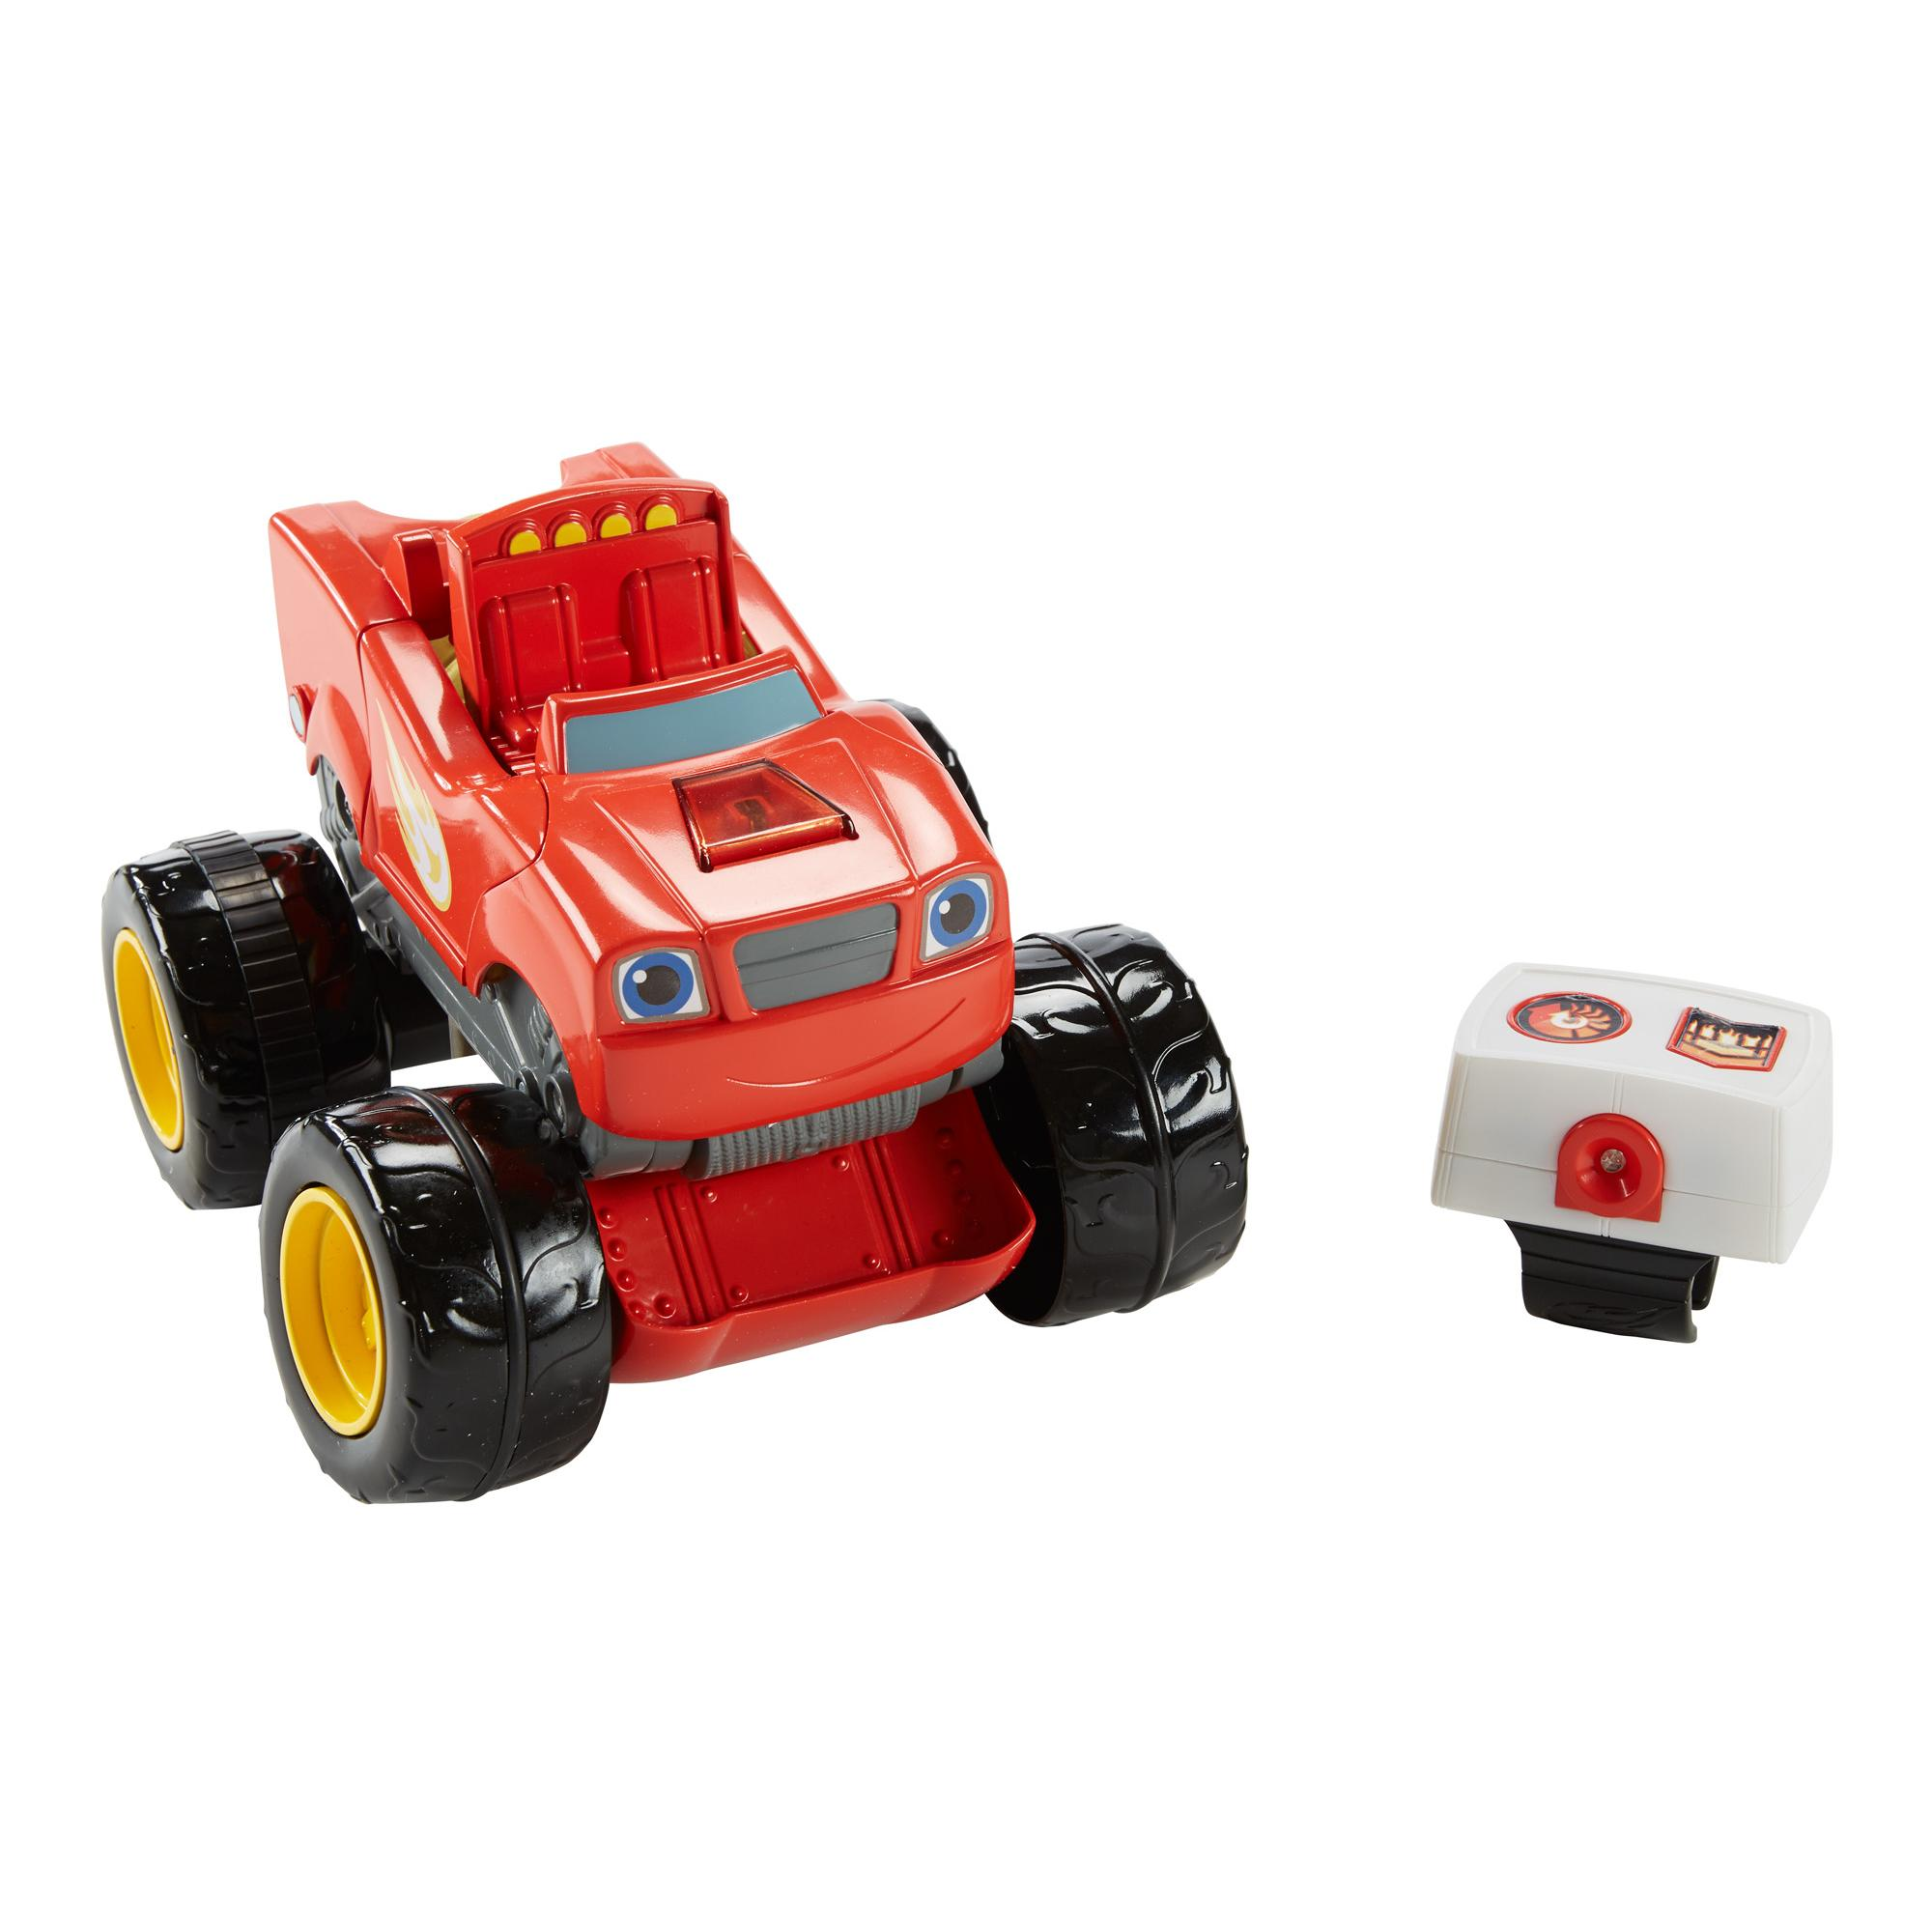 Fisher Price Nickelodeon Blaze and the Monster Machines Transforming R C Blaze by Fisher-Price